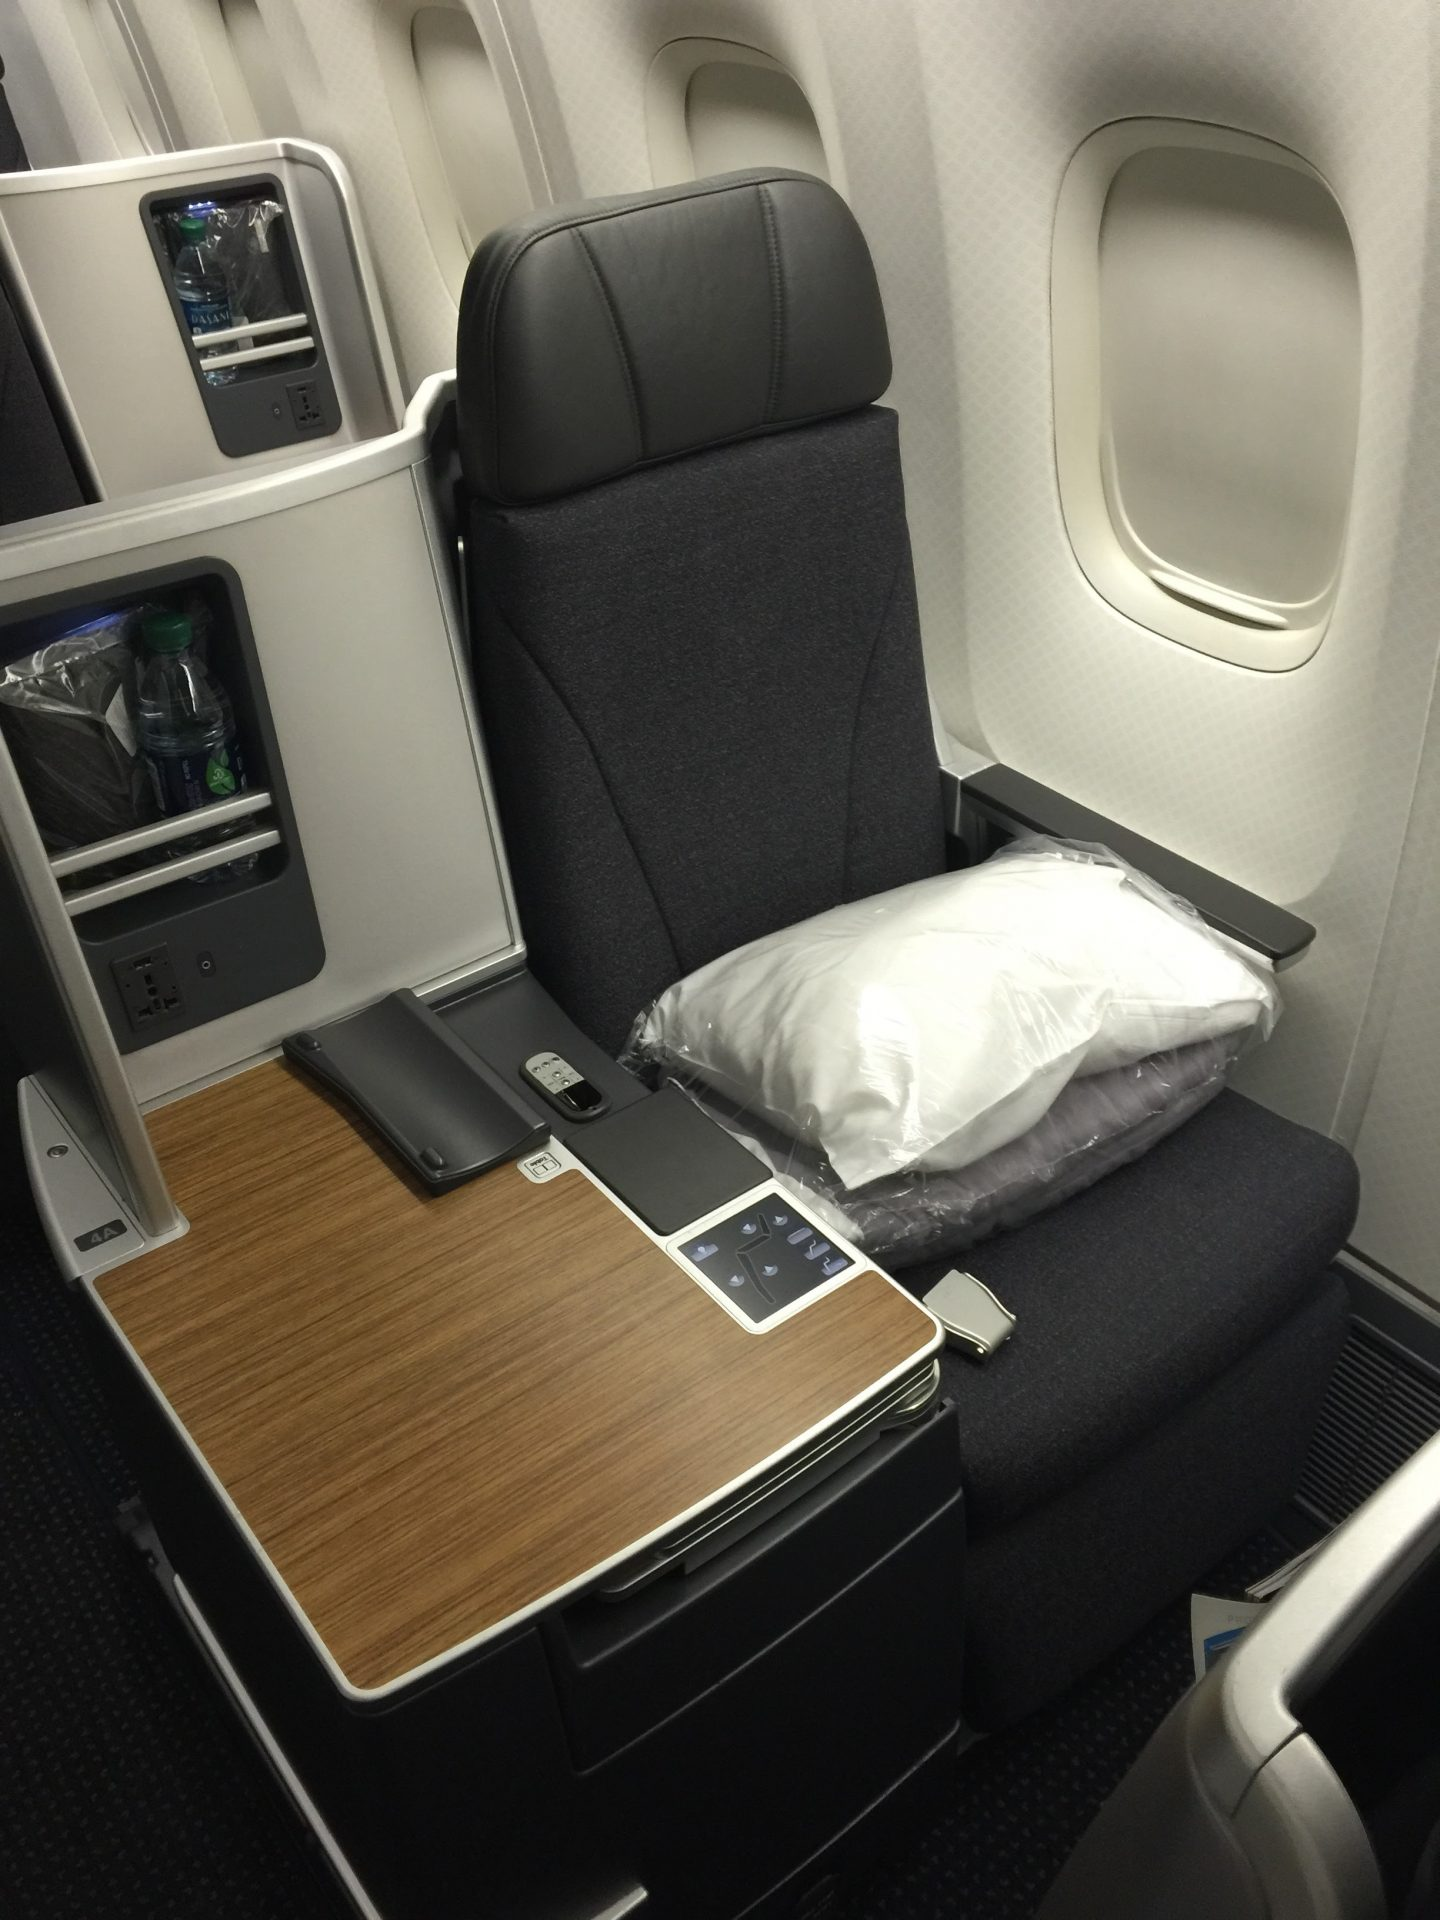 American Airlines Business Class Boeing 767-300 New York JFK